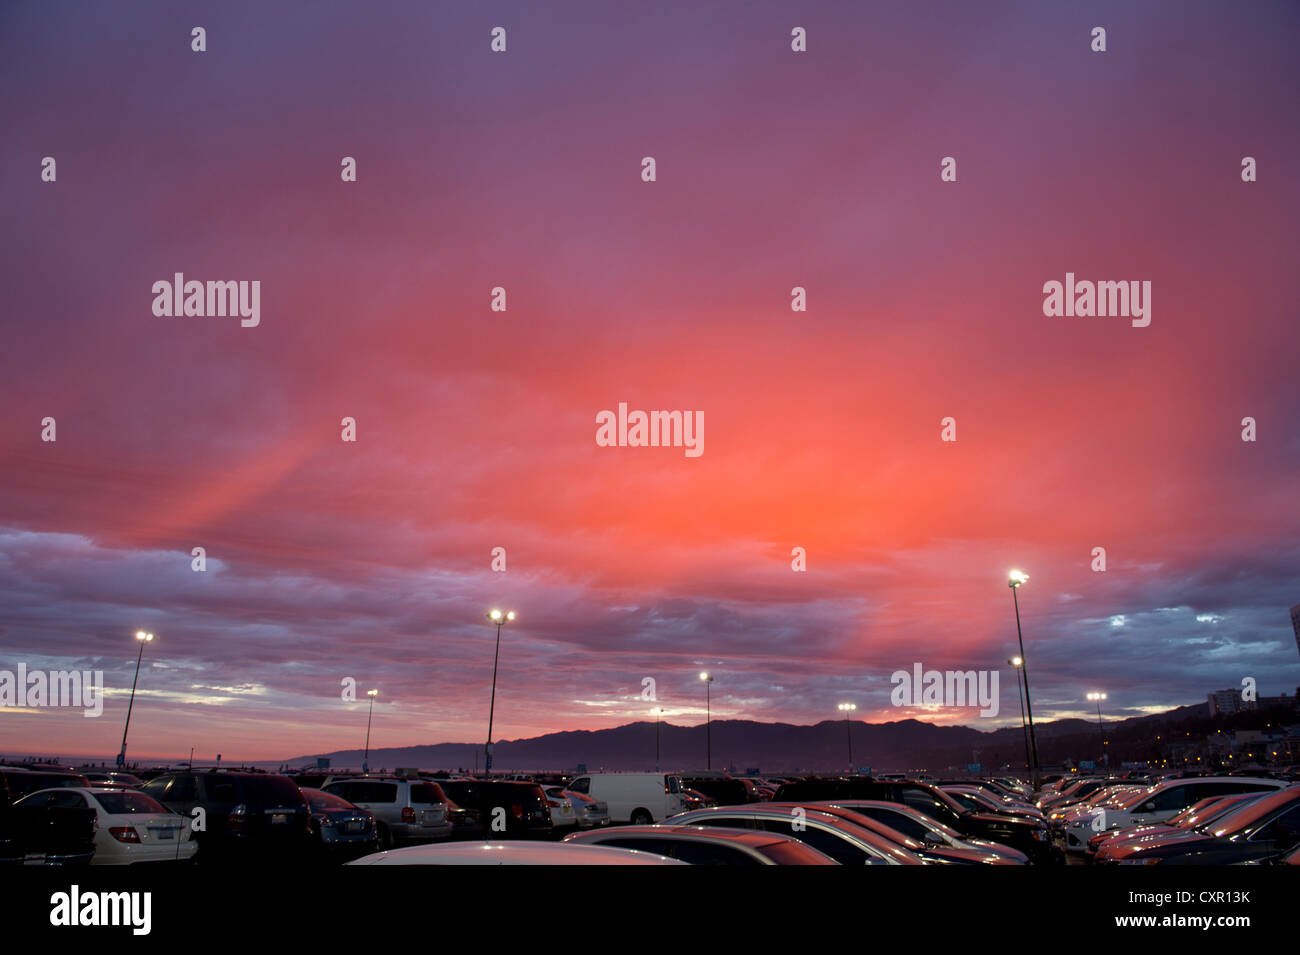 Cars in parking lot at sunset - Stock Image